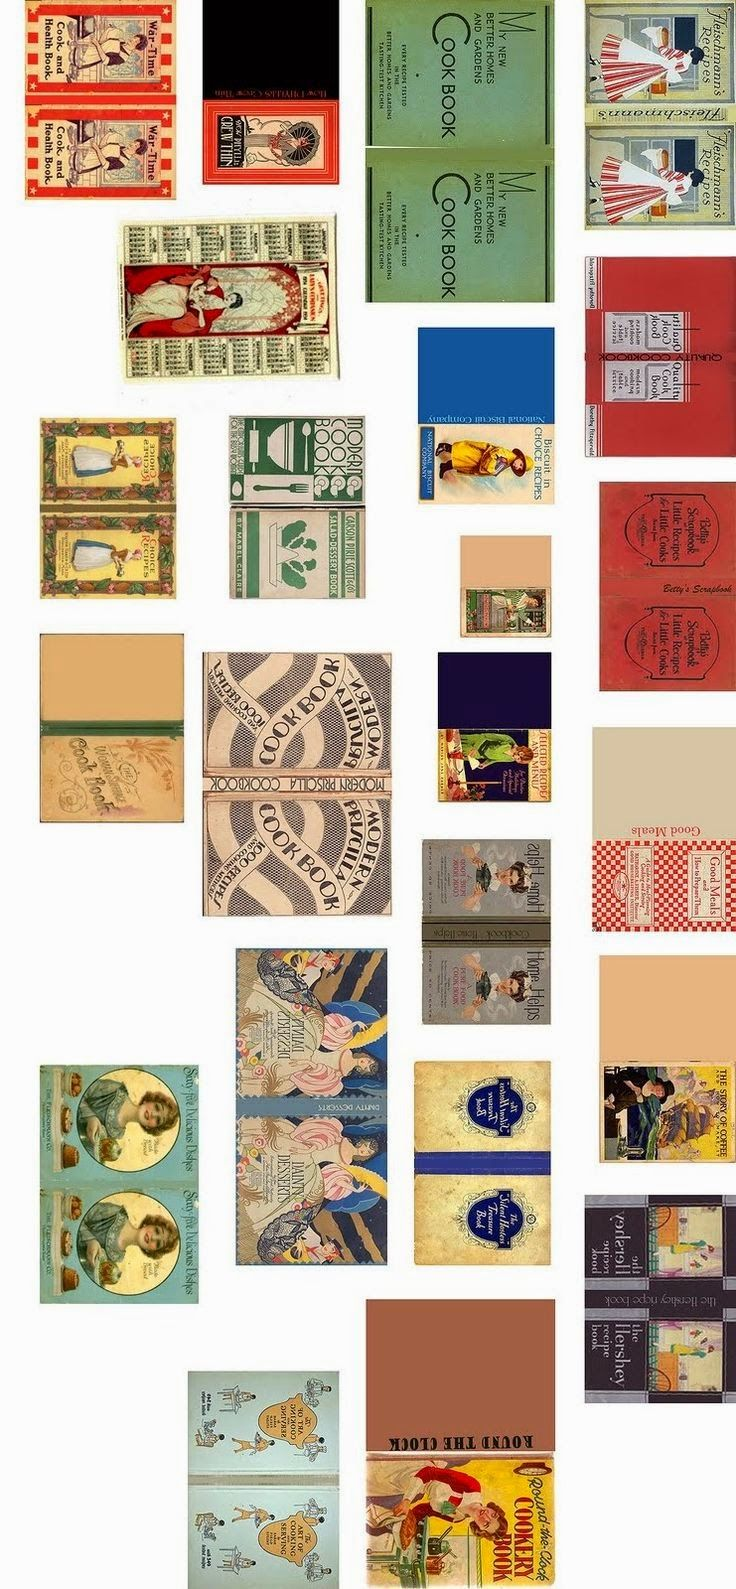 Herbie's Collection of Printable Minis & Scaleable Images For Dolls Houses: Doll's House printable Book covers - some for resize